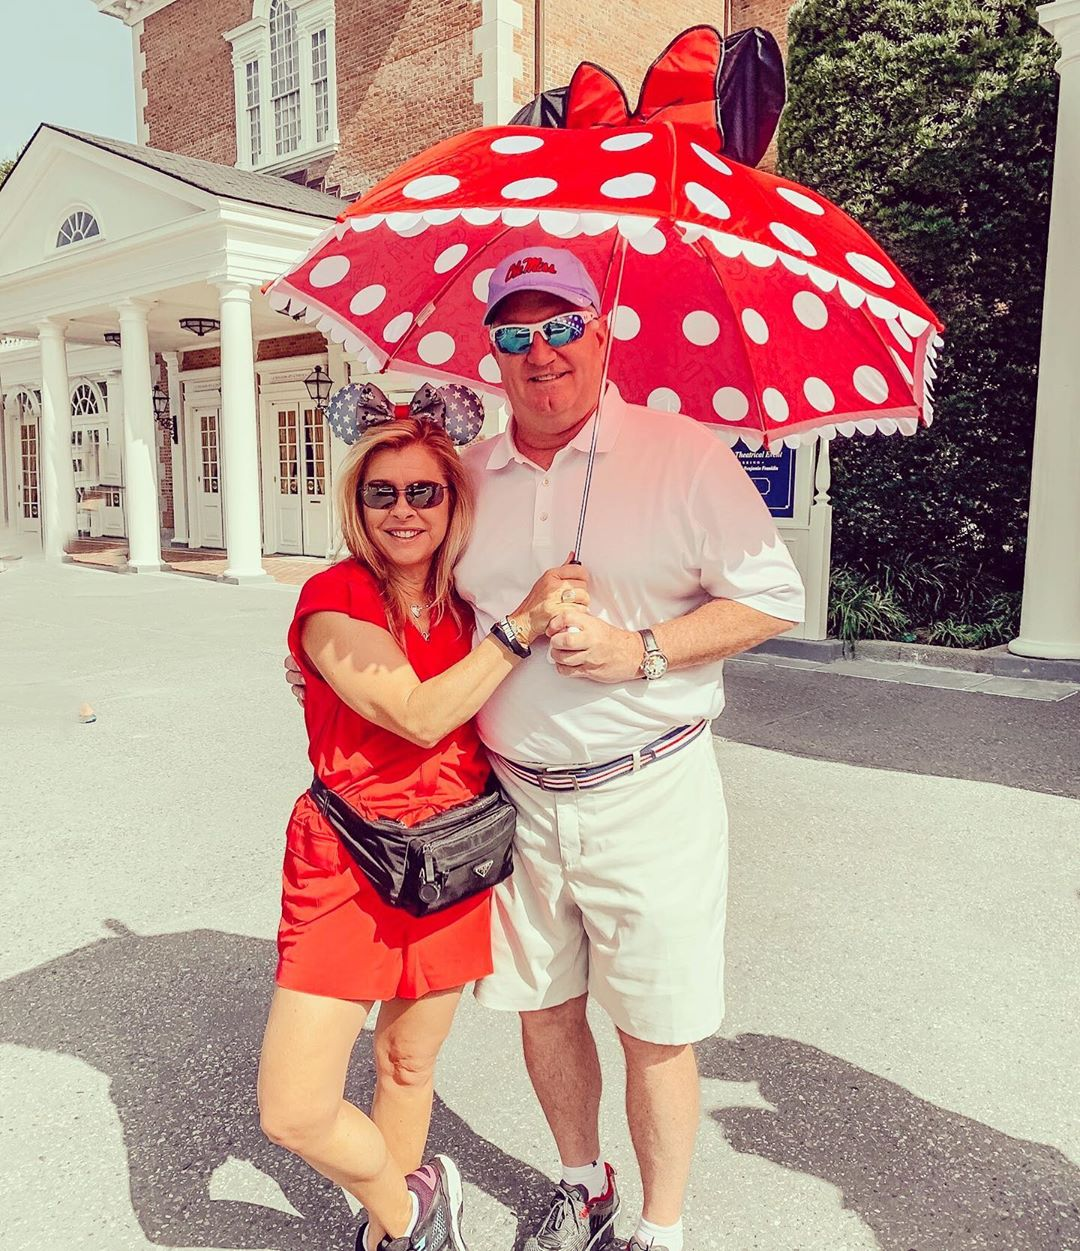 an American sports commentator look happy with his wife